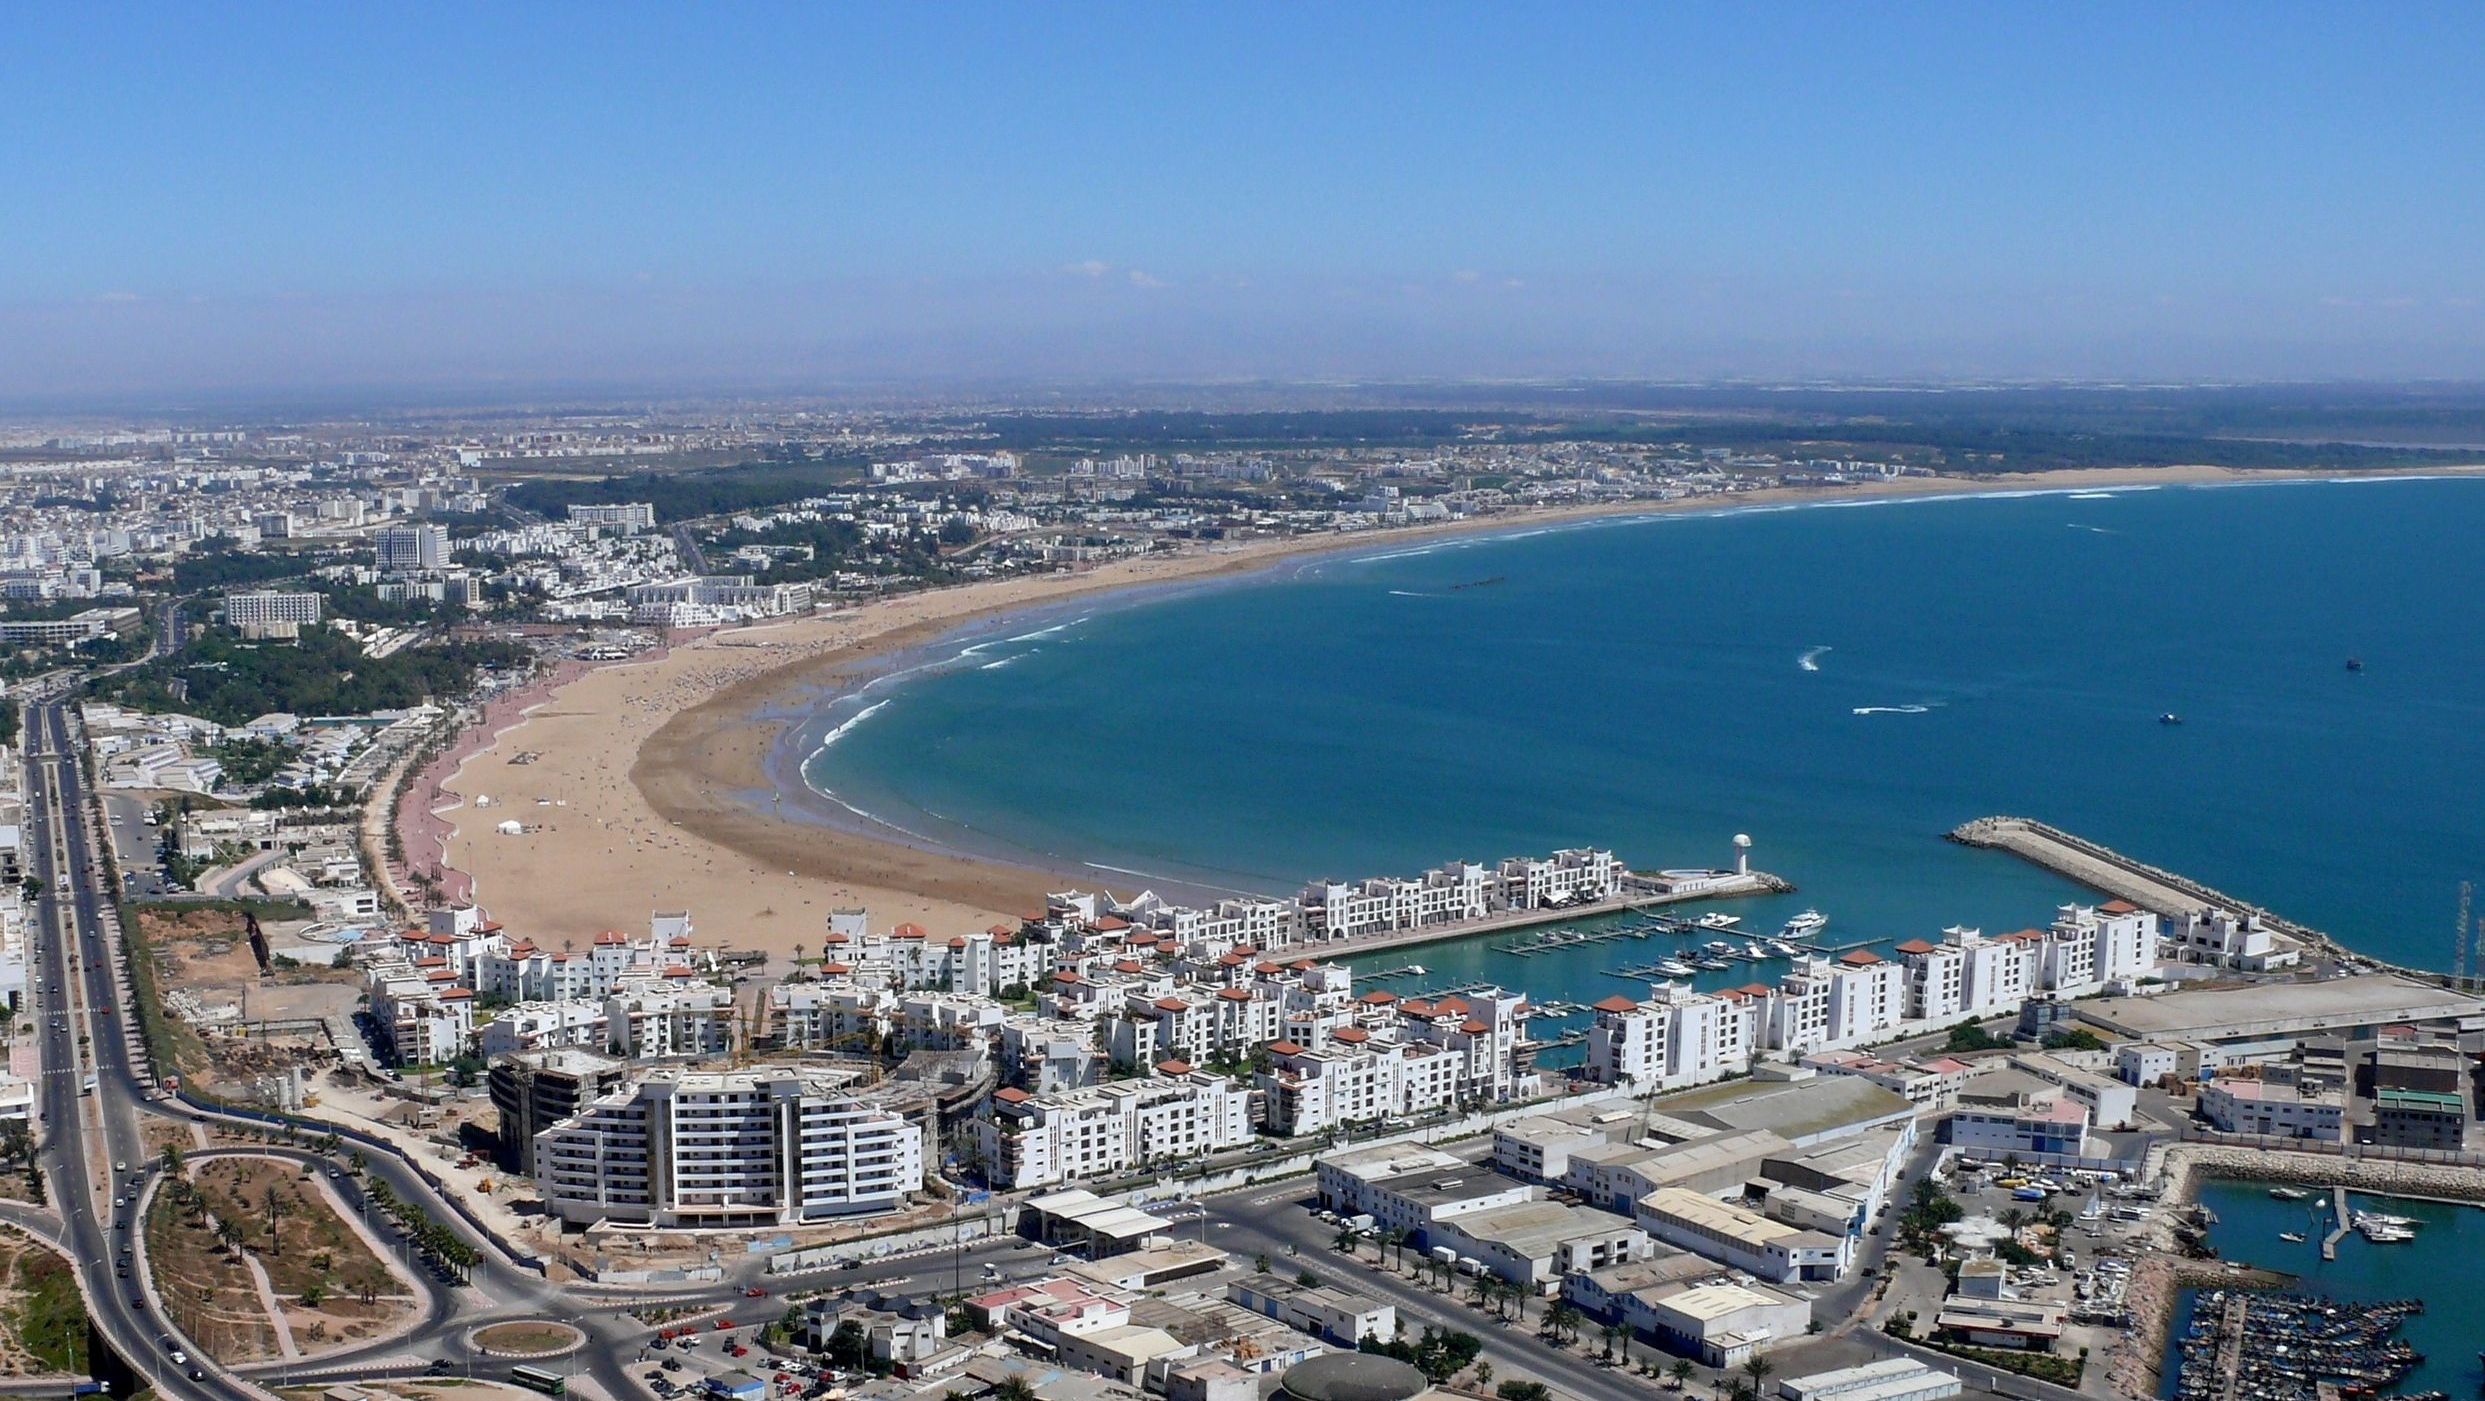 Unlimited travel: The city of Agadir: The sun and beach 10 Most Beautiful Places In The World Wallpaper